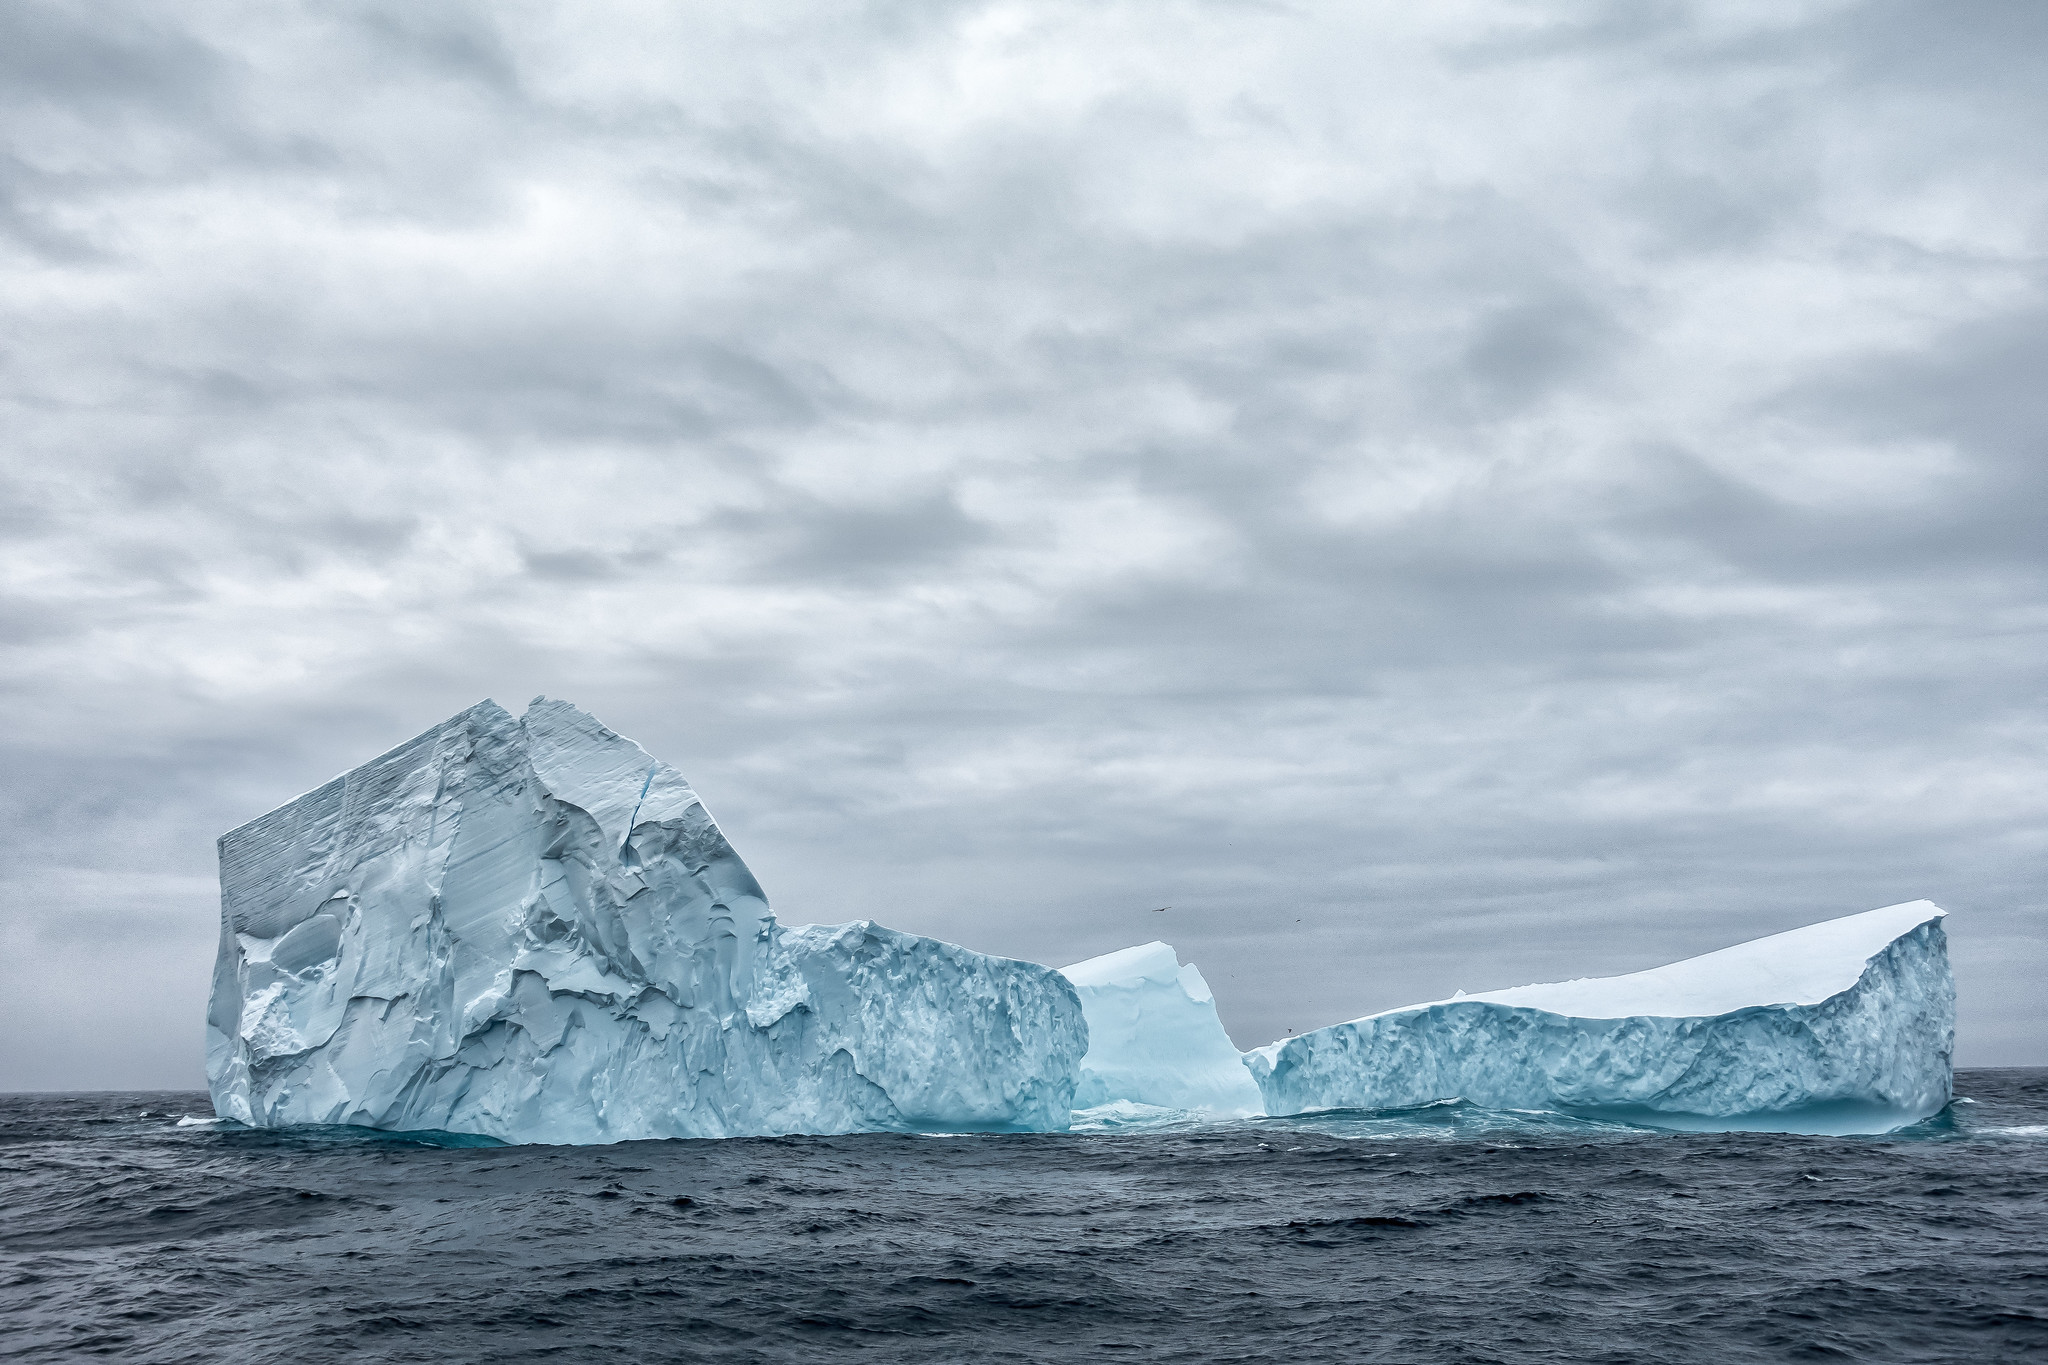 Antarctic Ocean iceberg (Photo: Kyle Mortara via Flickr Creative Commons)